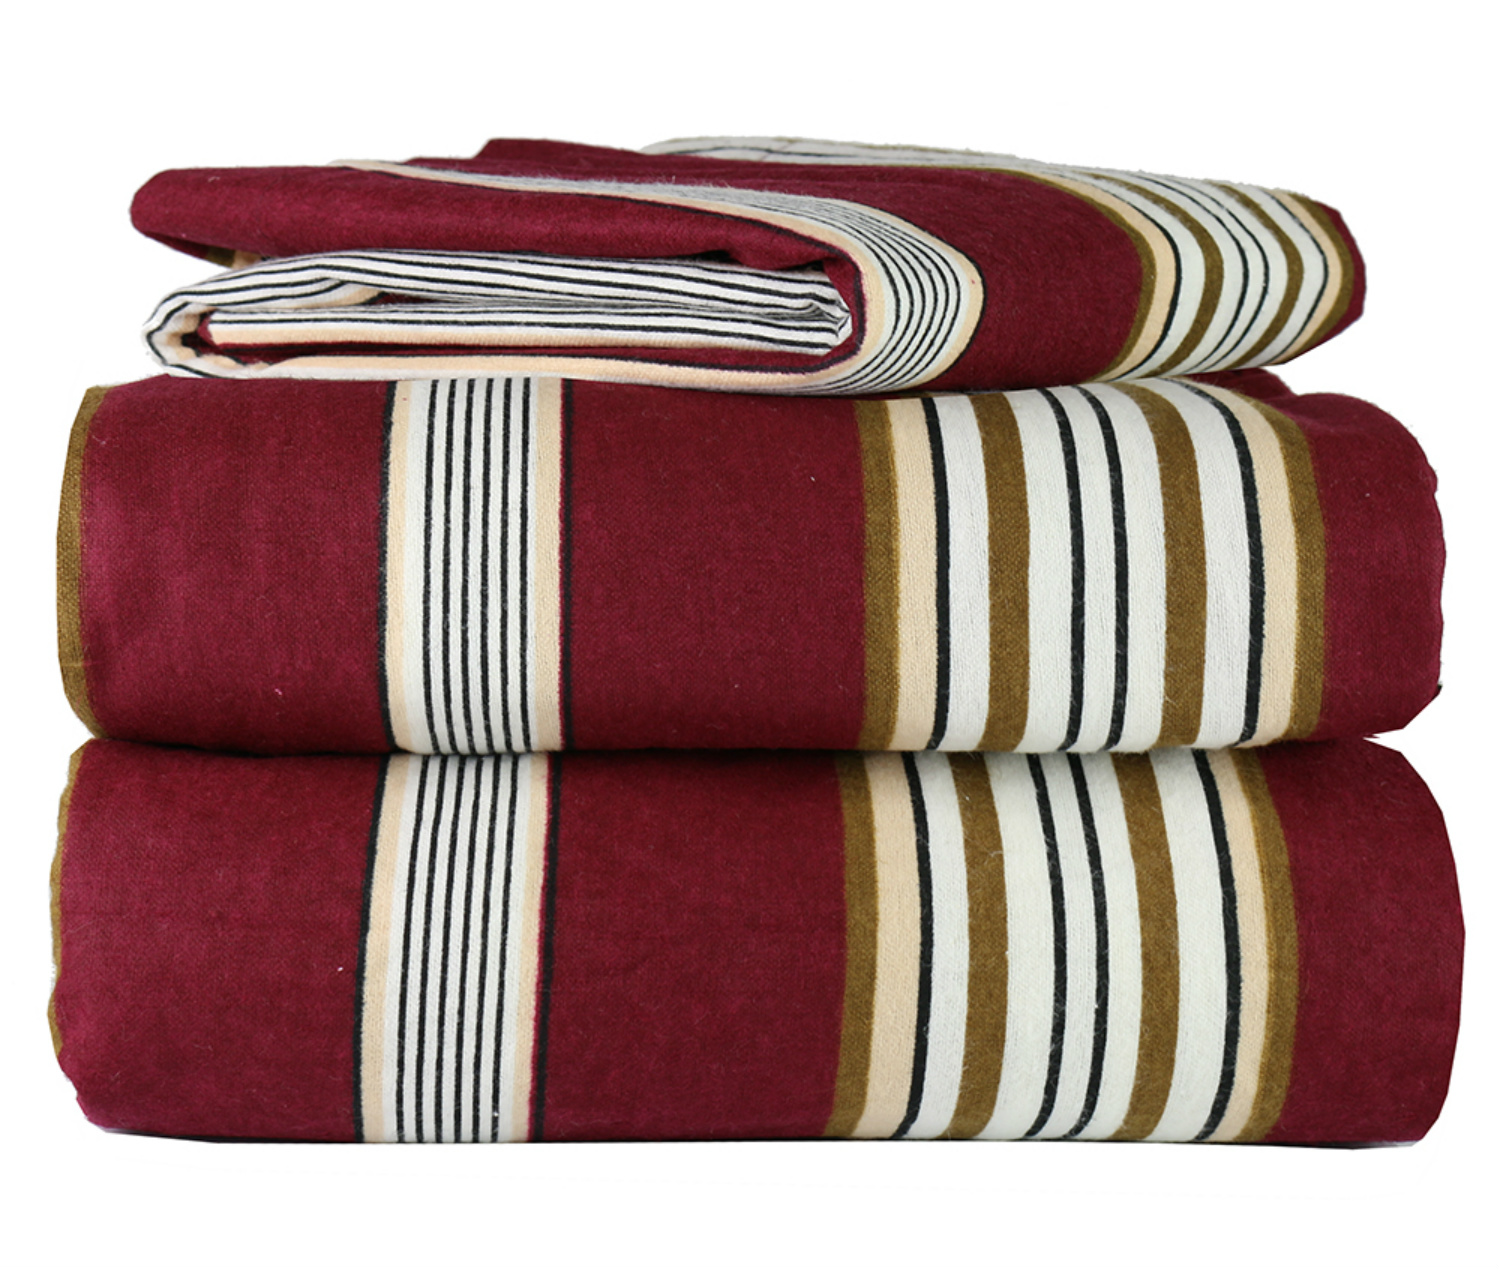 4 Piece 100 Soft Flannel Cotton Bed Sheet Set Queen King Size Patterned Bedding Covers 1 Flat Sheet 1 Fitted Sheet 2 Pillow Cases Fade Resistant Designs Burgundy Stripe King Walmart Com Walmart Com